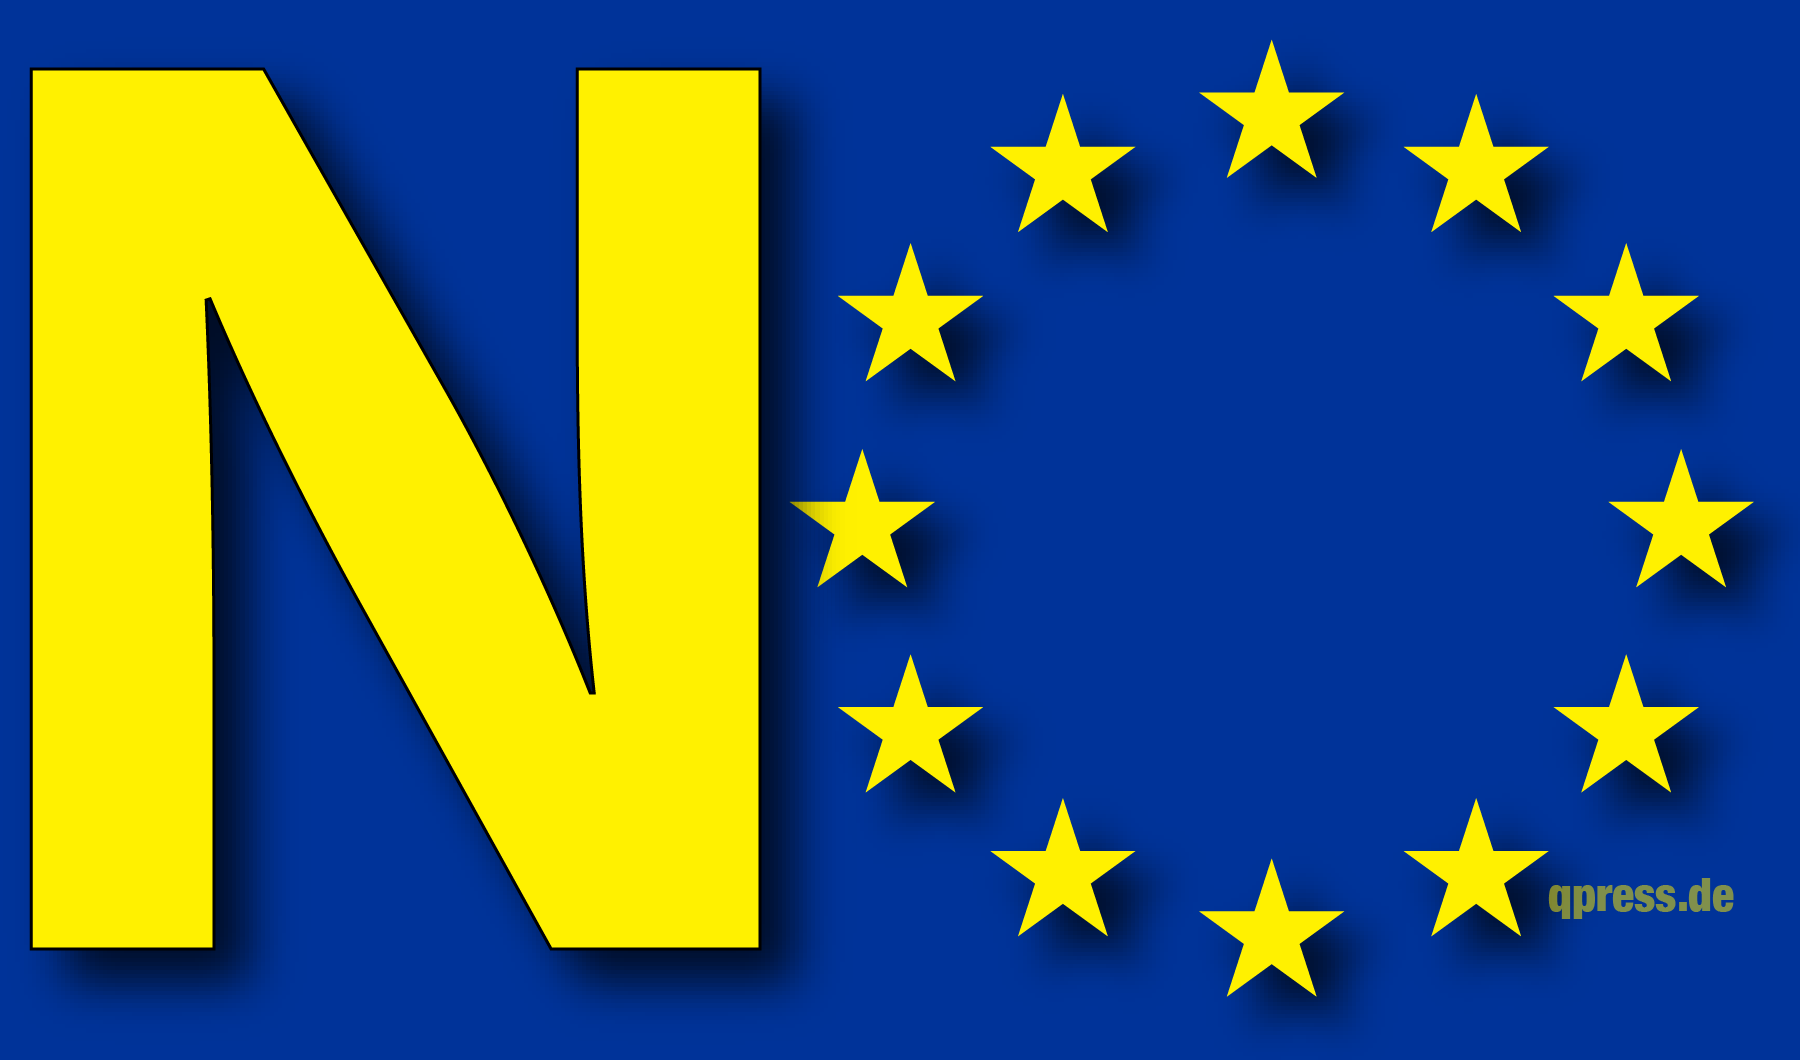 brexit_no_eu_europaeische_european_union_referendum_northern_ireland_nicola_sturgeon_boris_johnson_david_cameron_nigel_farage_schottland_scotland_kritisches_netzwerk.png